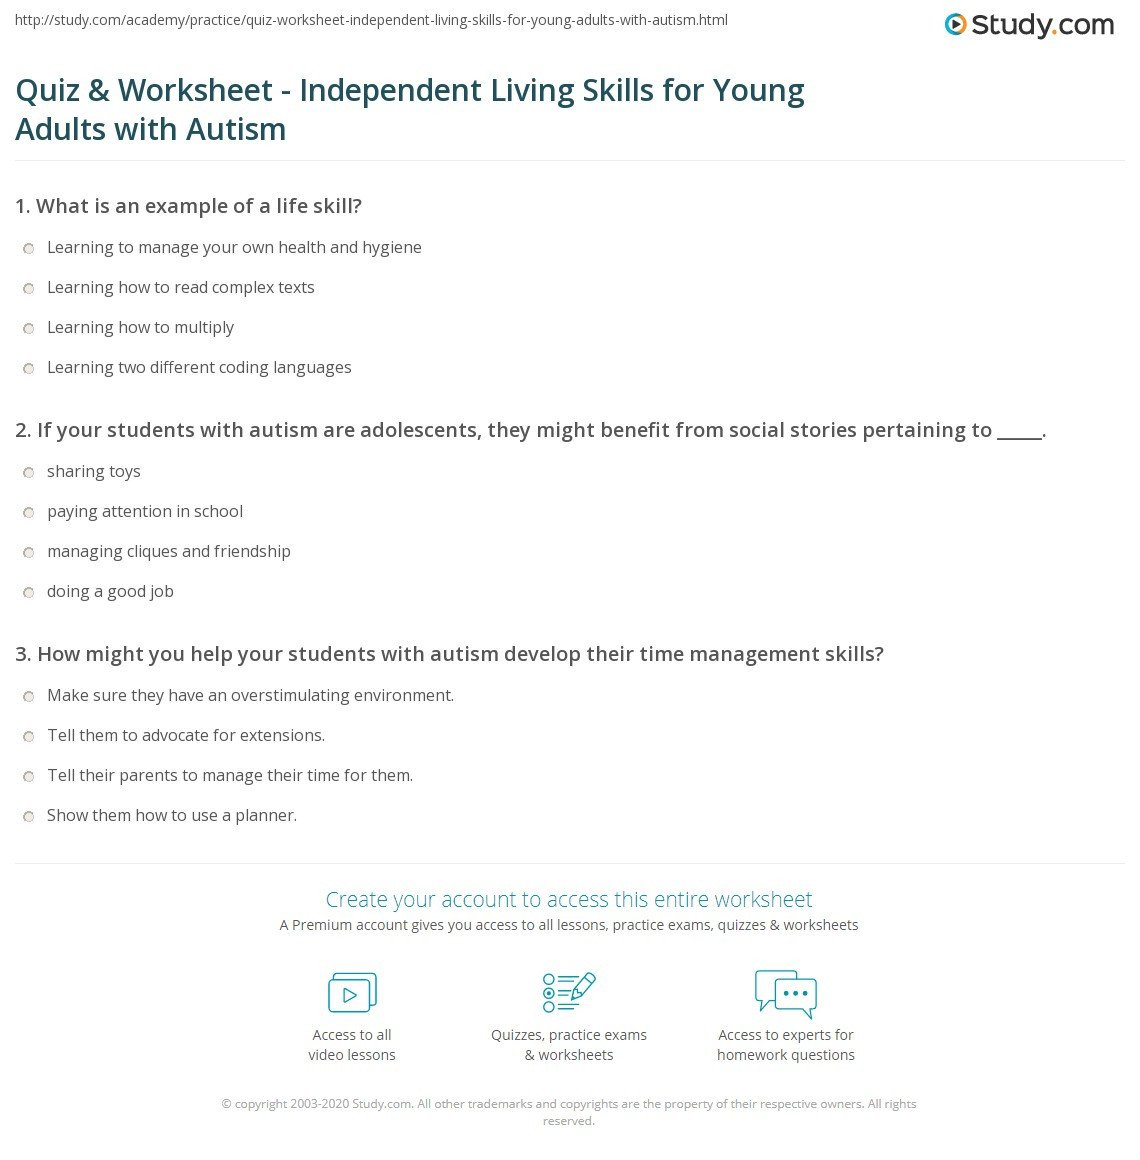 quiz worksheet independent living skills for young adults with autism